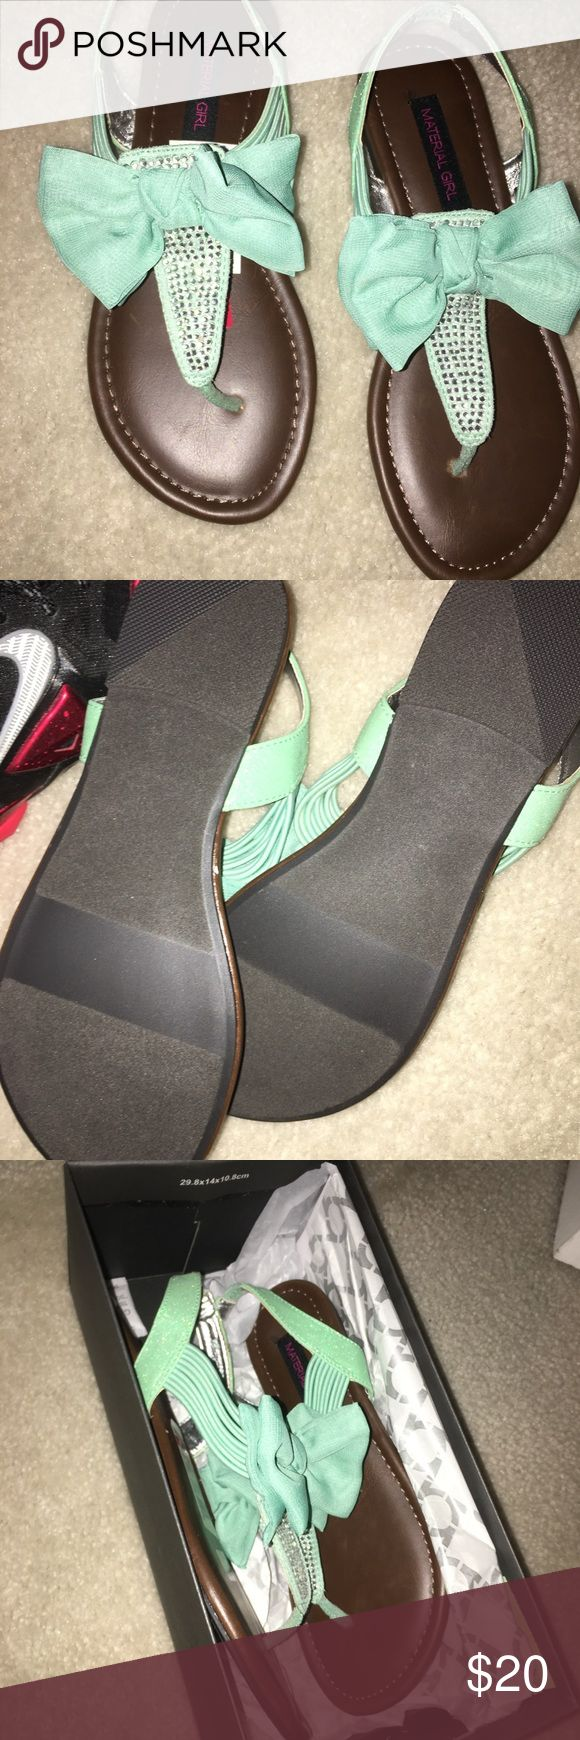 Brand new sandals with bow Brand new teal sandals with bow. Comes with box. Perfect to give as a gift Shoes Sandals